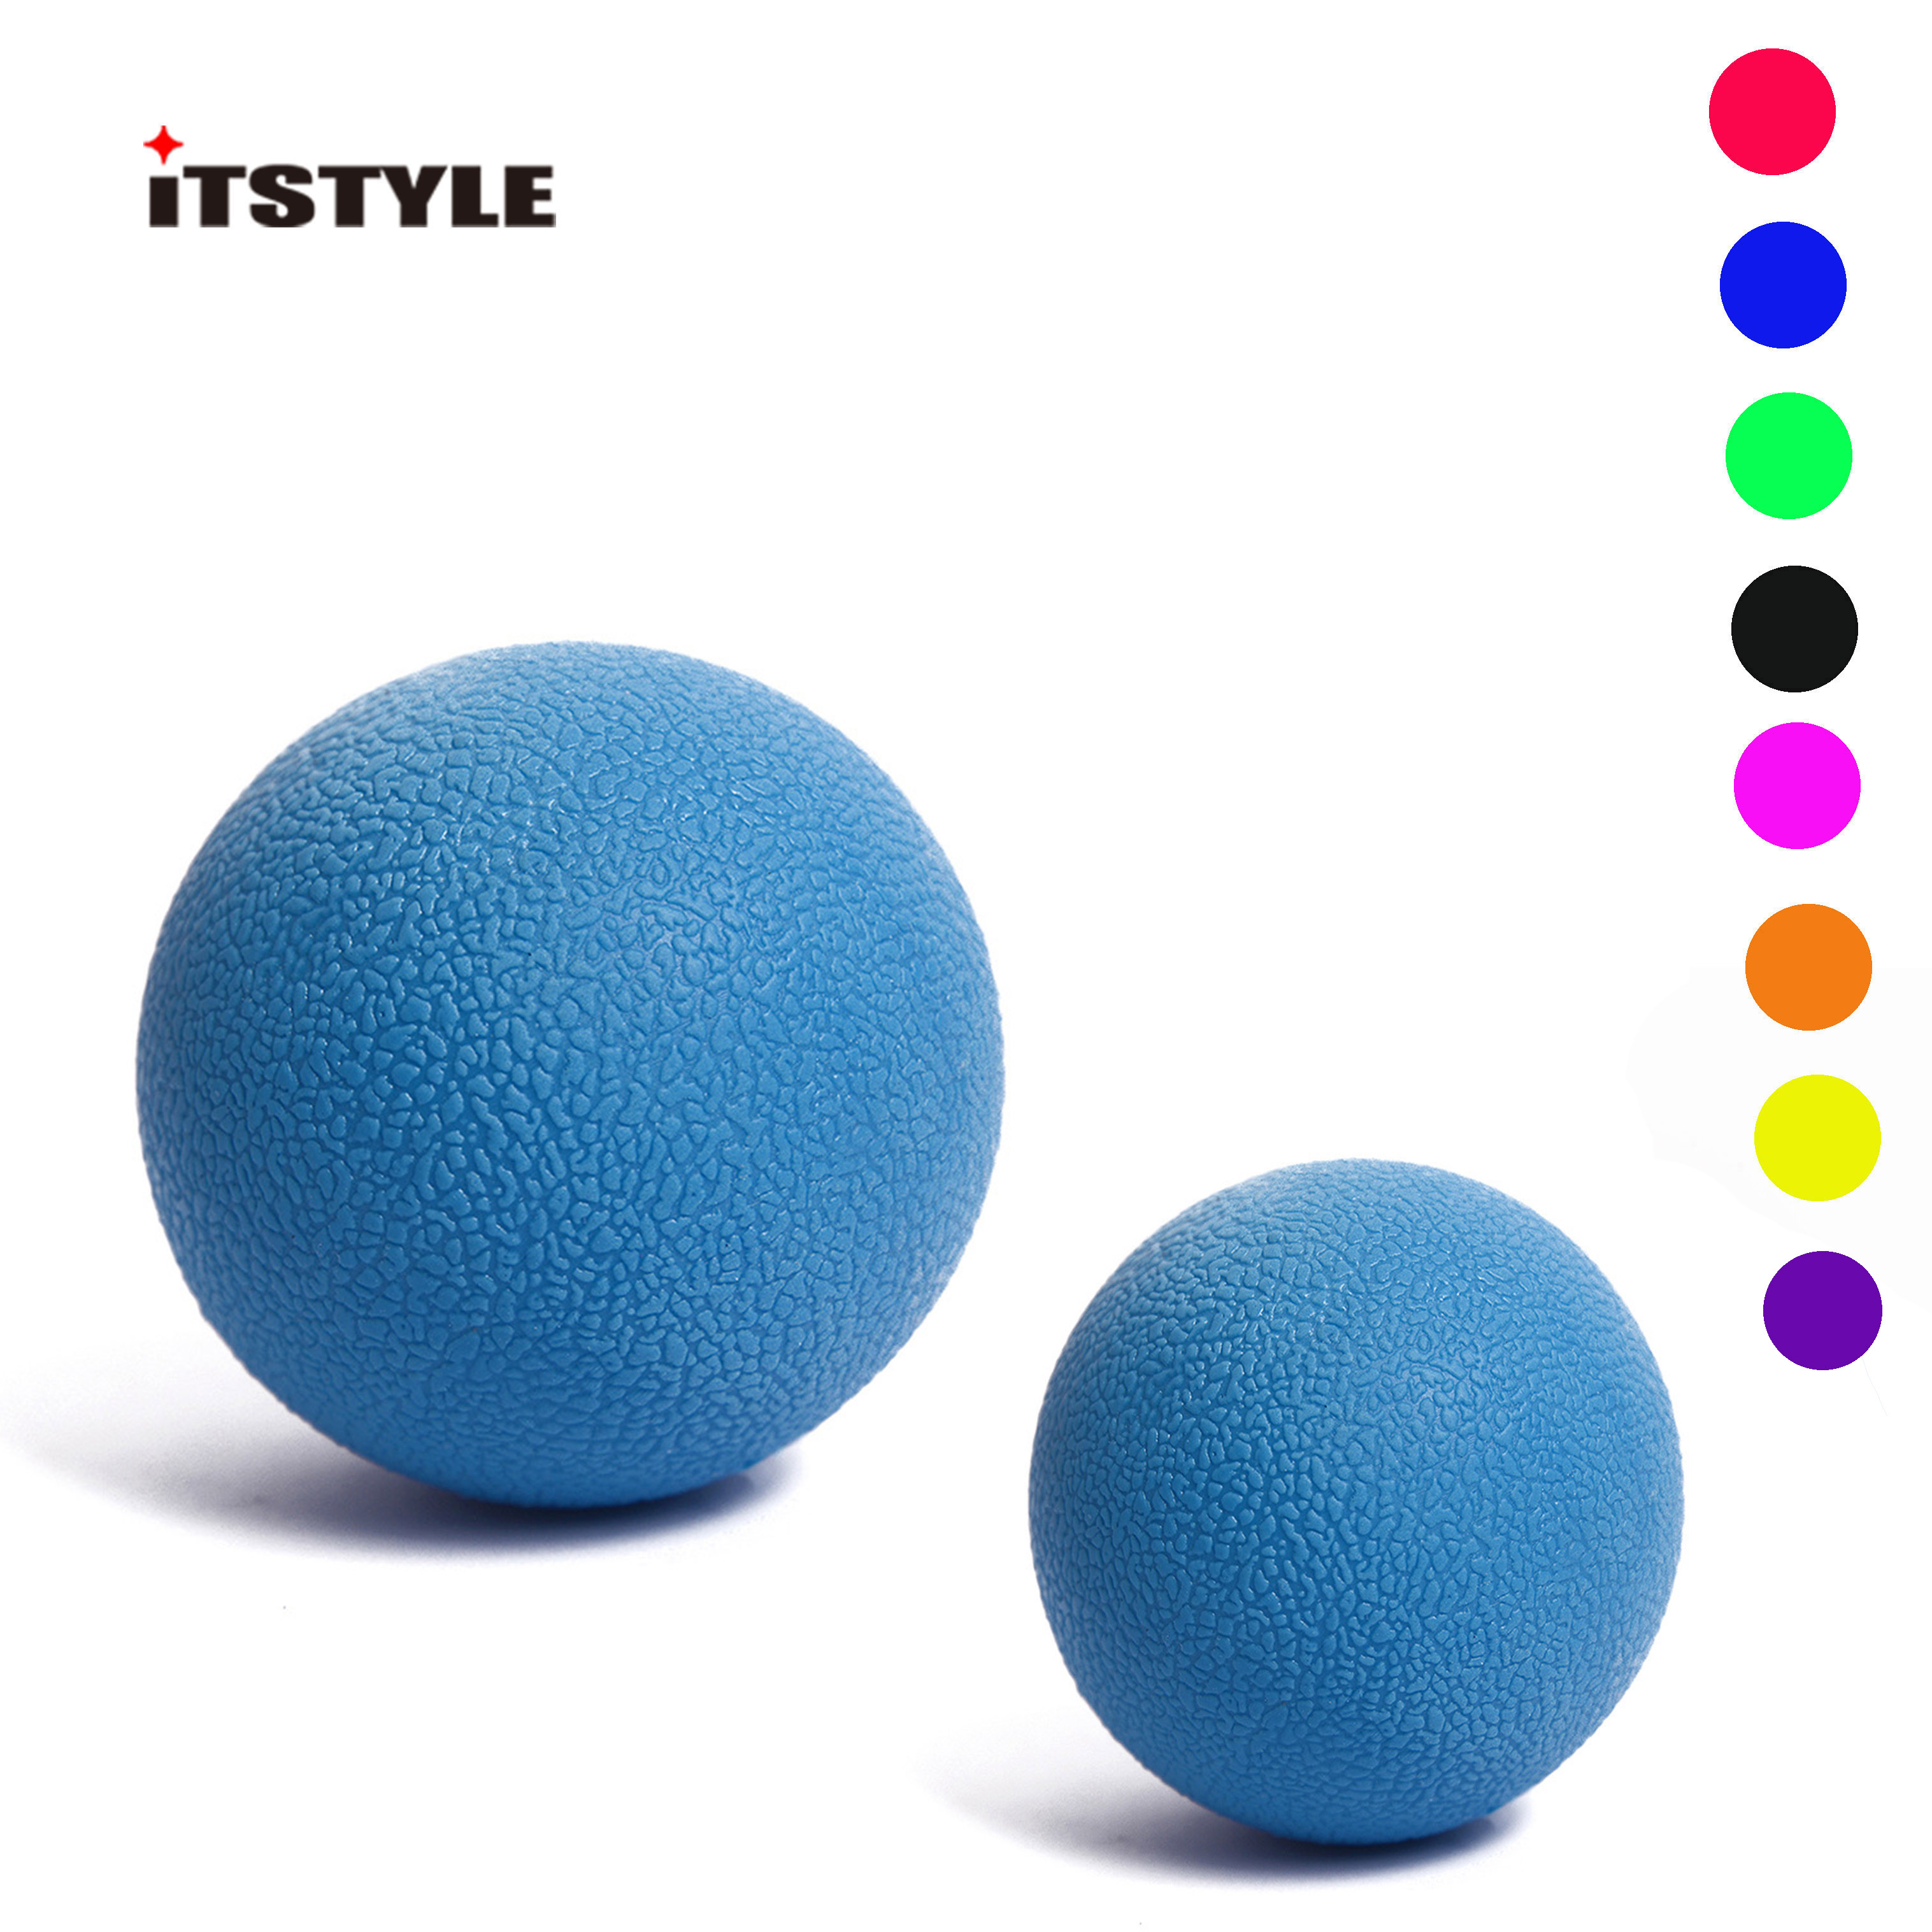 ITSTYLE Lacrosse Ball Sports Muscle Relax Fatigue Roller Gym Fitness Massage Therapy Trigger Point Body Yoga Exercise ball